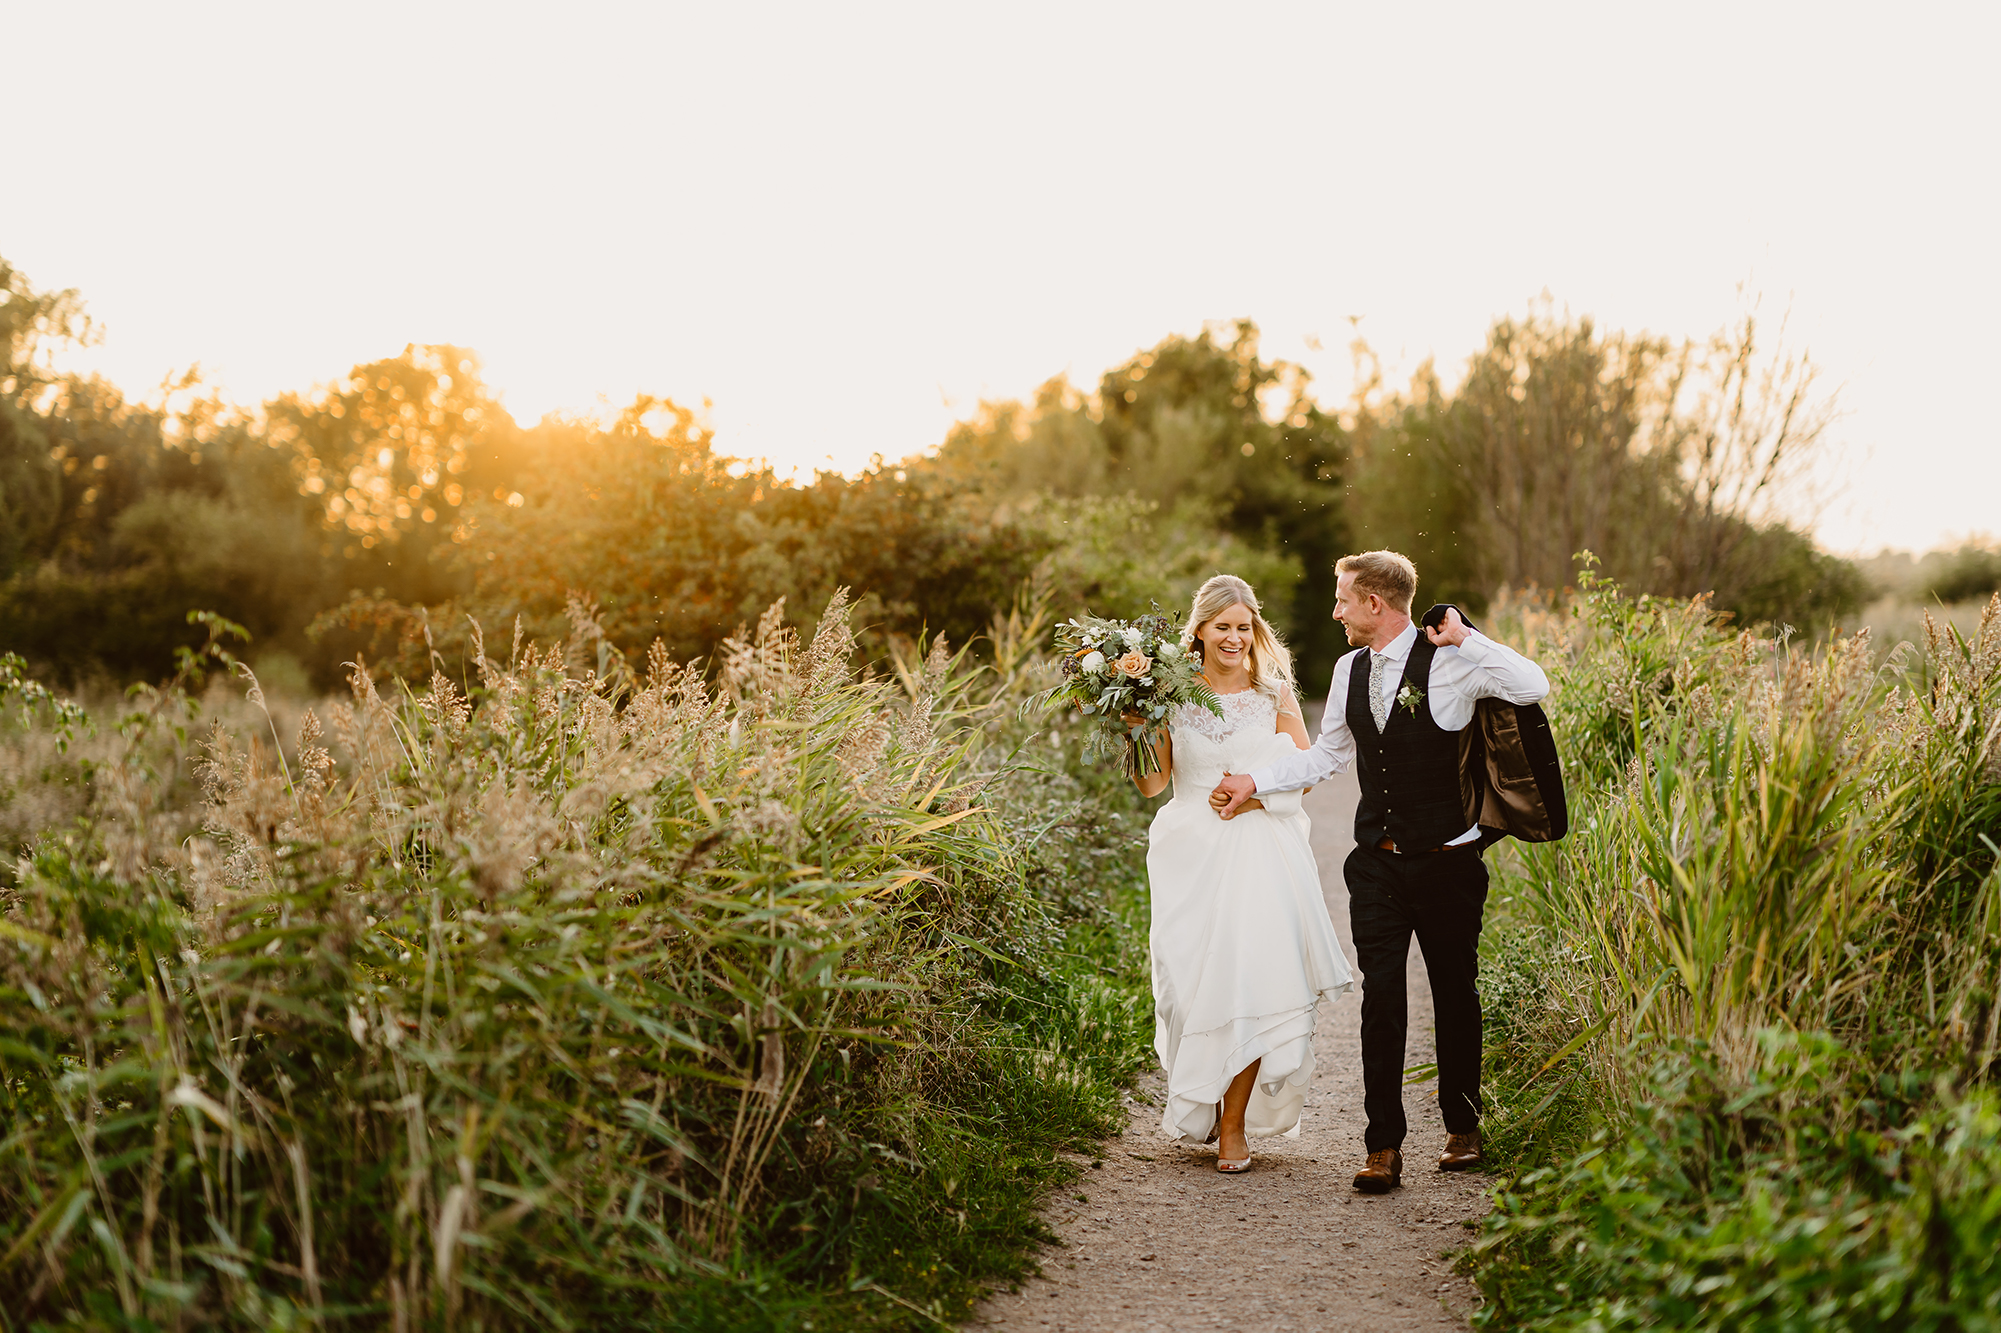 Newlyweds Walking Through the Gardens at Ivy House Country Hotel During Sunset